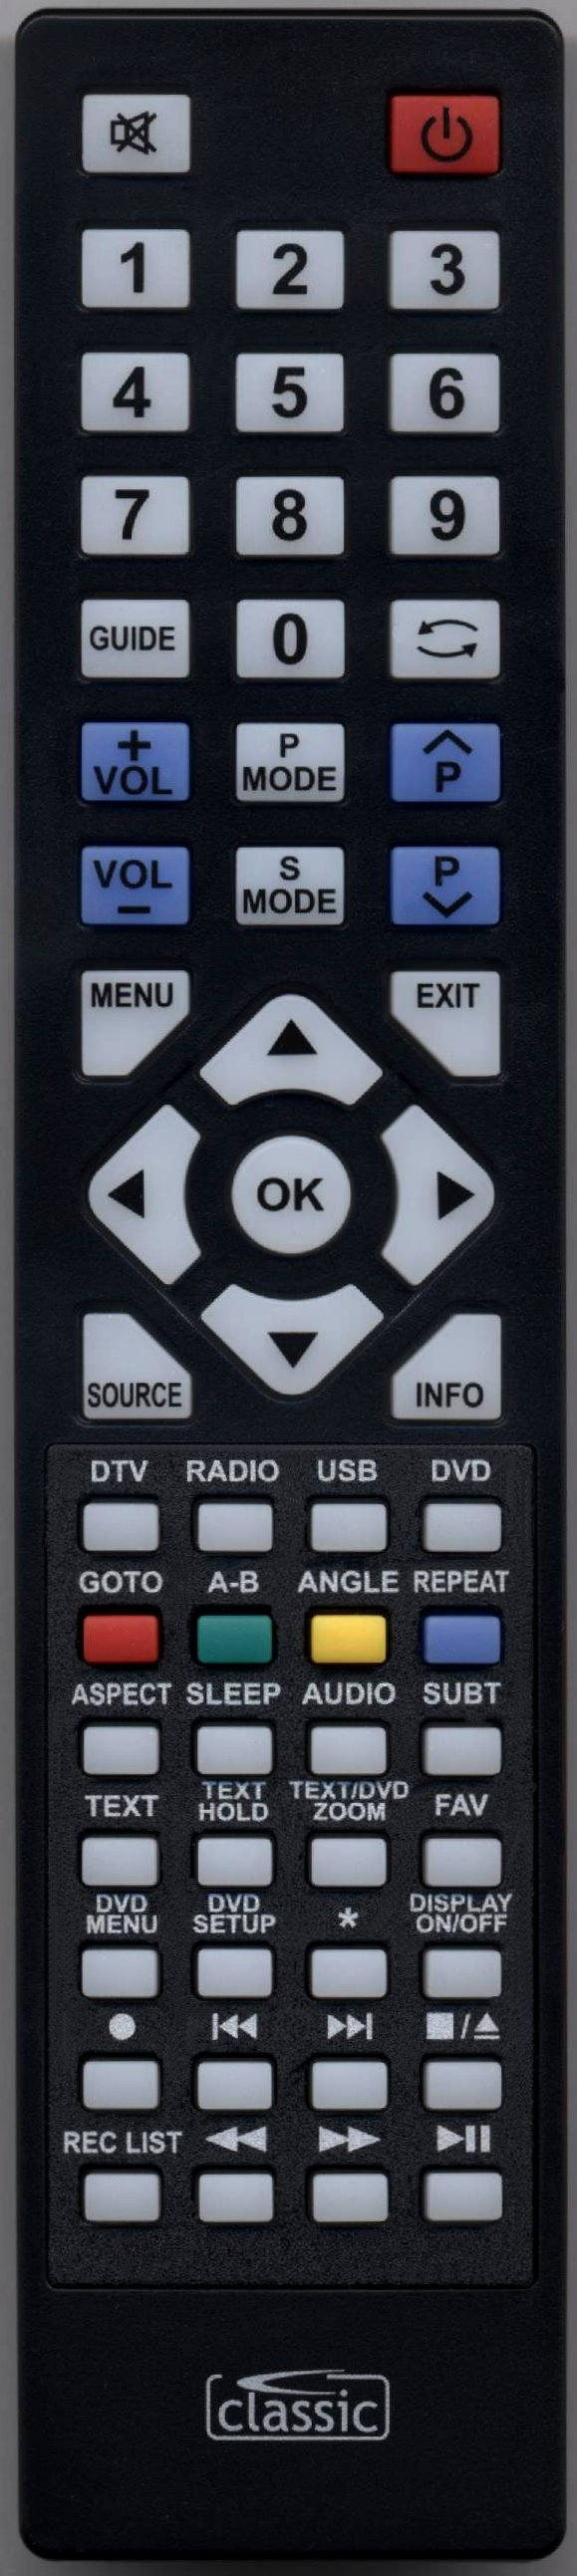 BLAUPUNKT 236/173J-GB-4B-HCDU-UK Remote Control